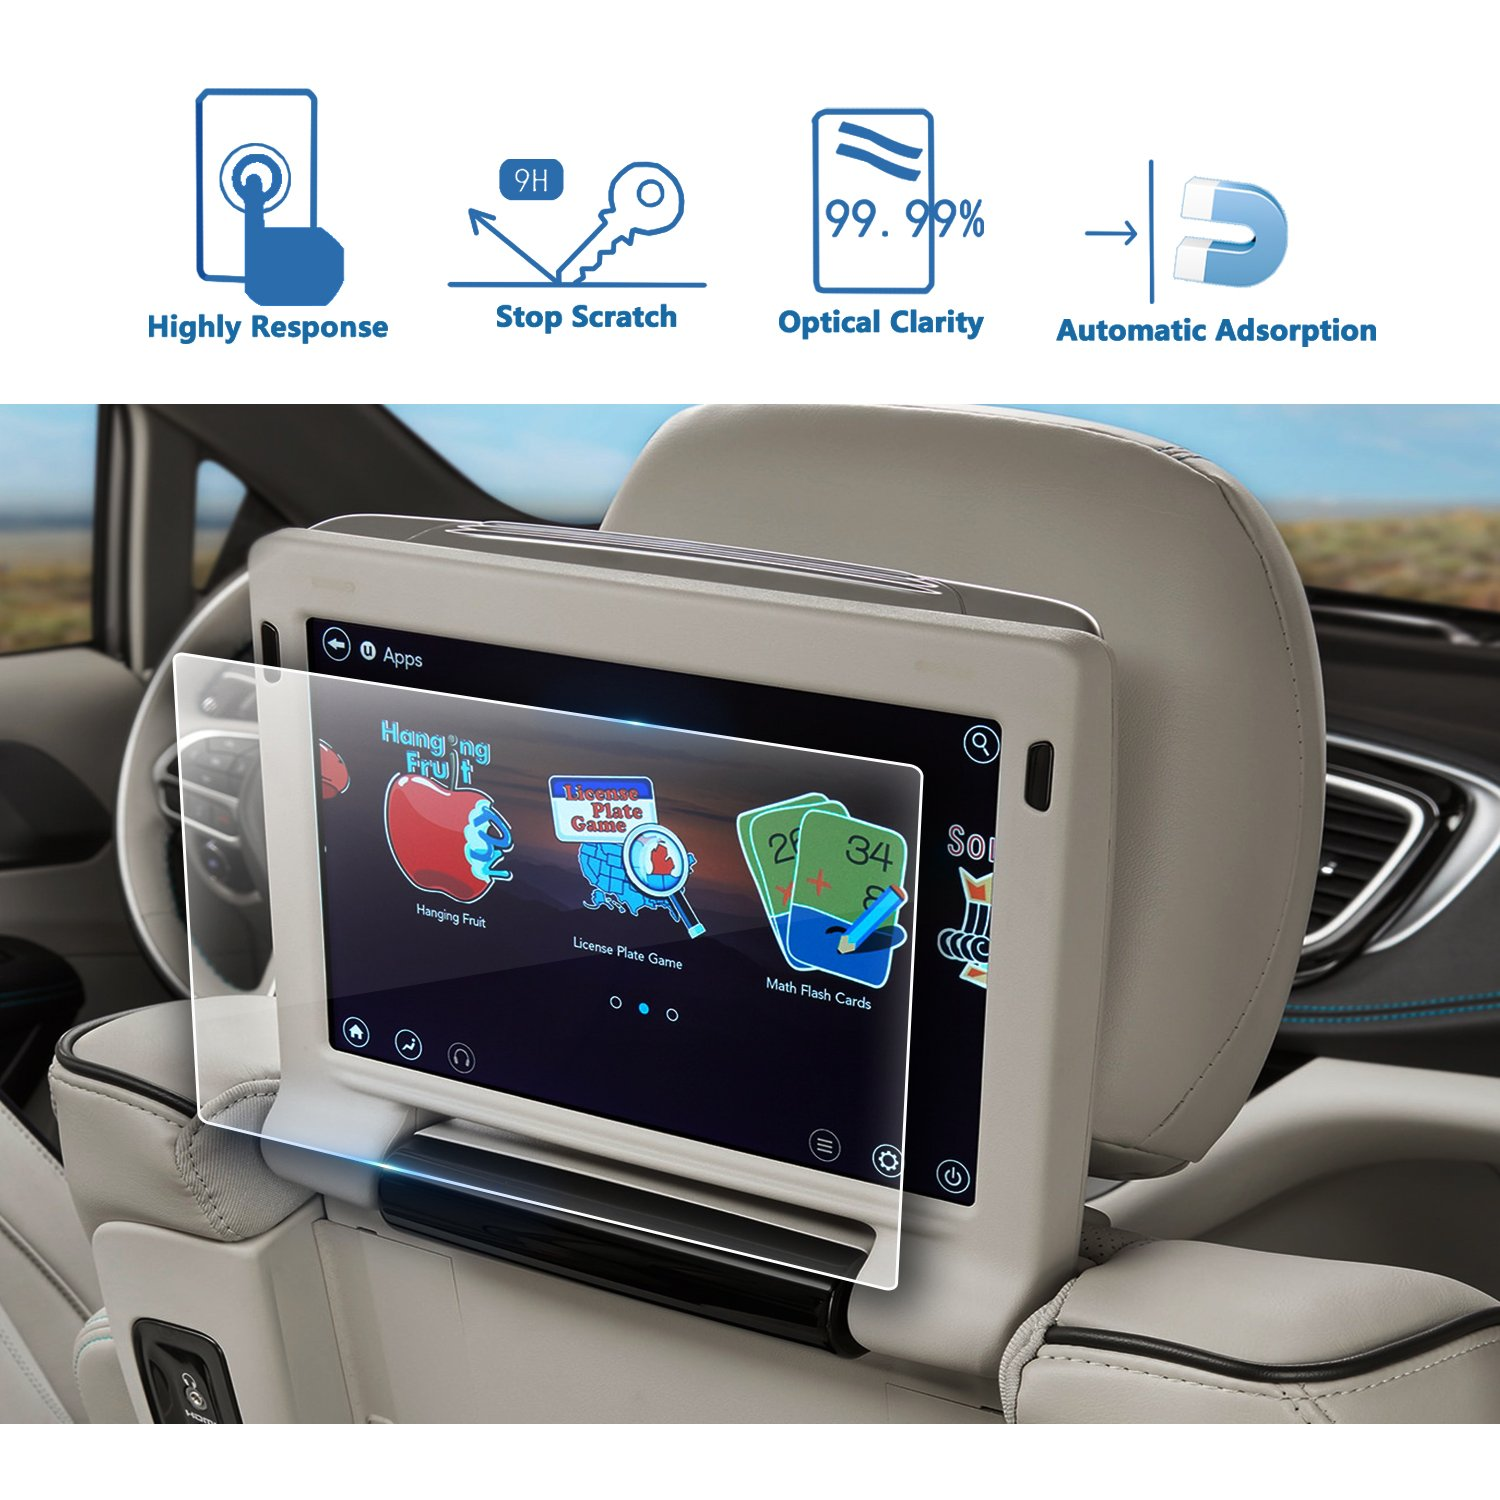 2PCS LFOTPP Rear Seat TV Glass Screen Protector for 2018 Chrysler Pacifica 10 Inch, Back Seat Entertainment/Headrest TV Screen Protector [9H] Anti Scratch